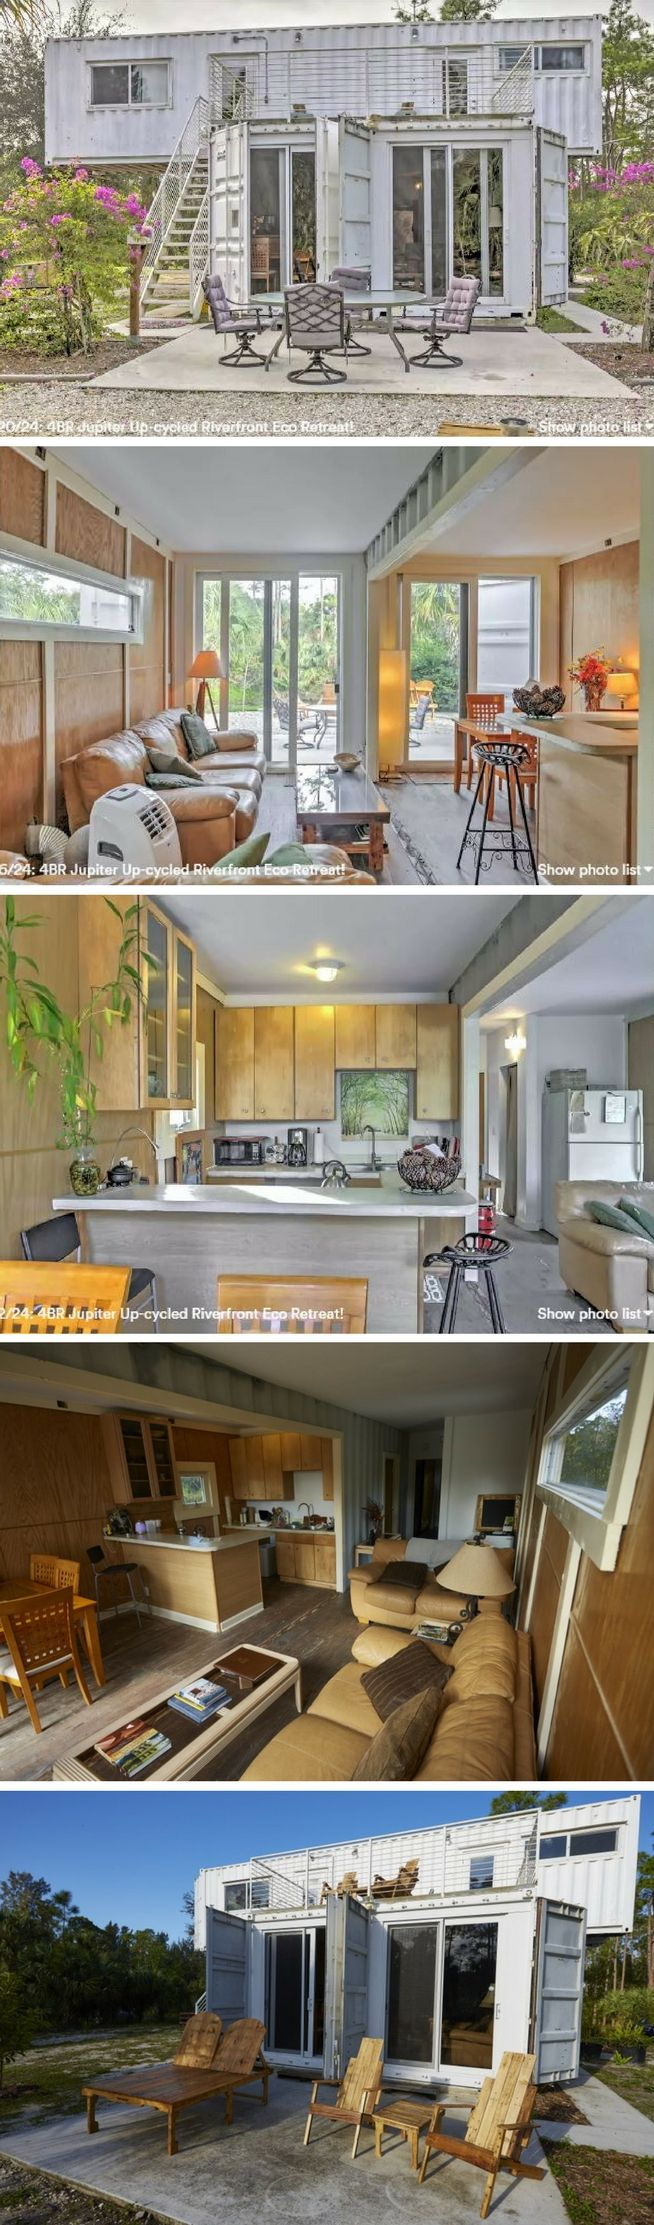 best 25 container house design ideas on pinterest container located in jupiter florida the eco retreat is a heavenly shipping container home to unwind and forget your worries set right in the midst of the